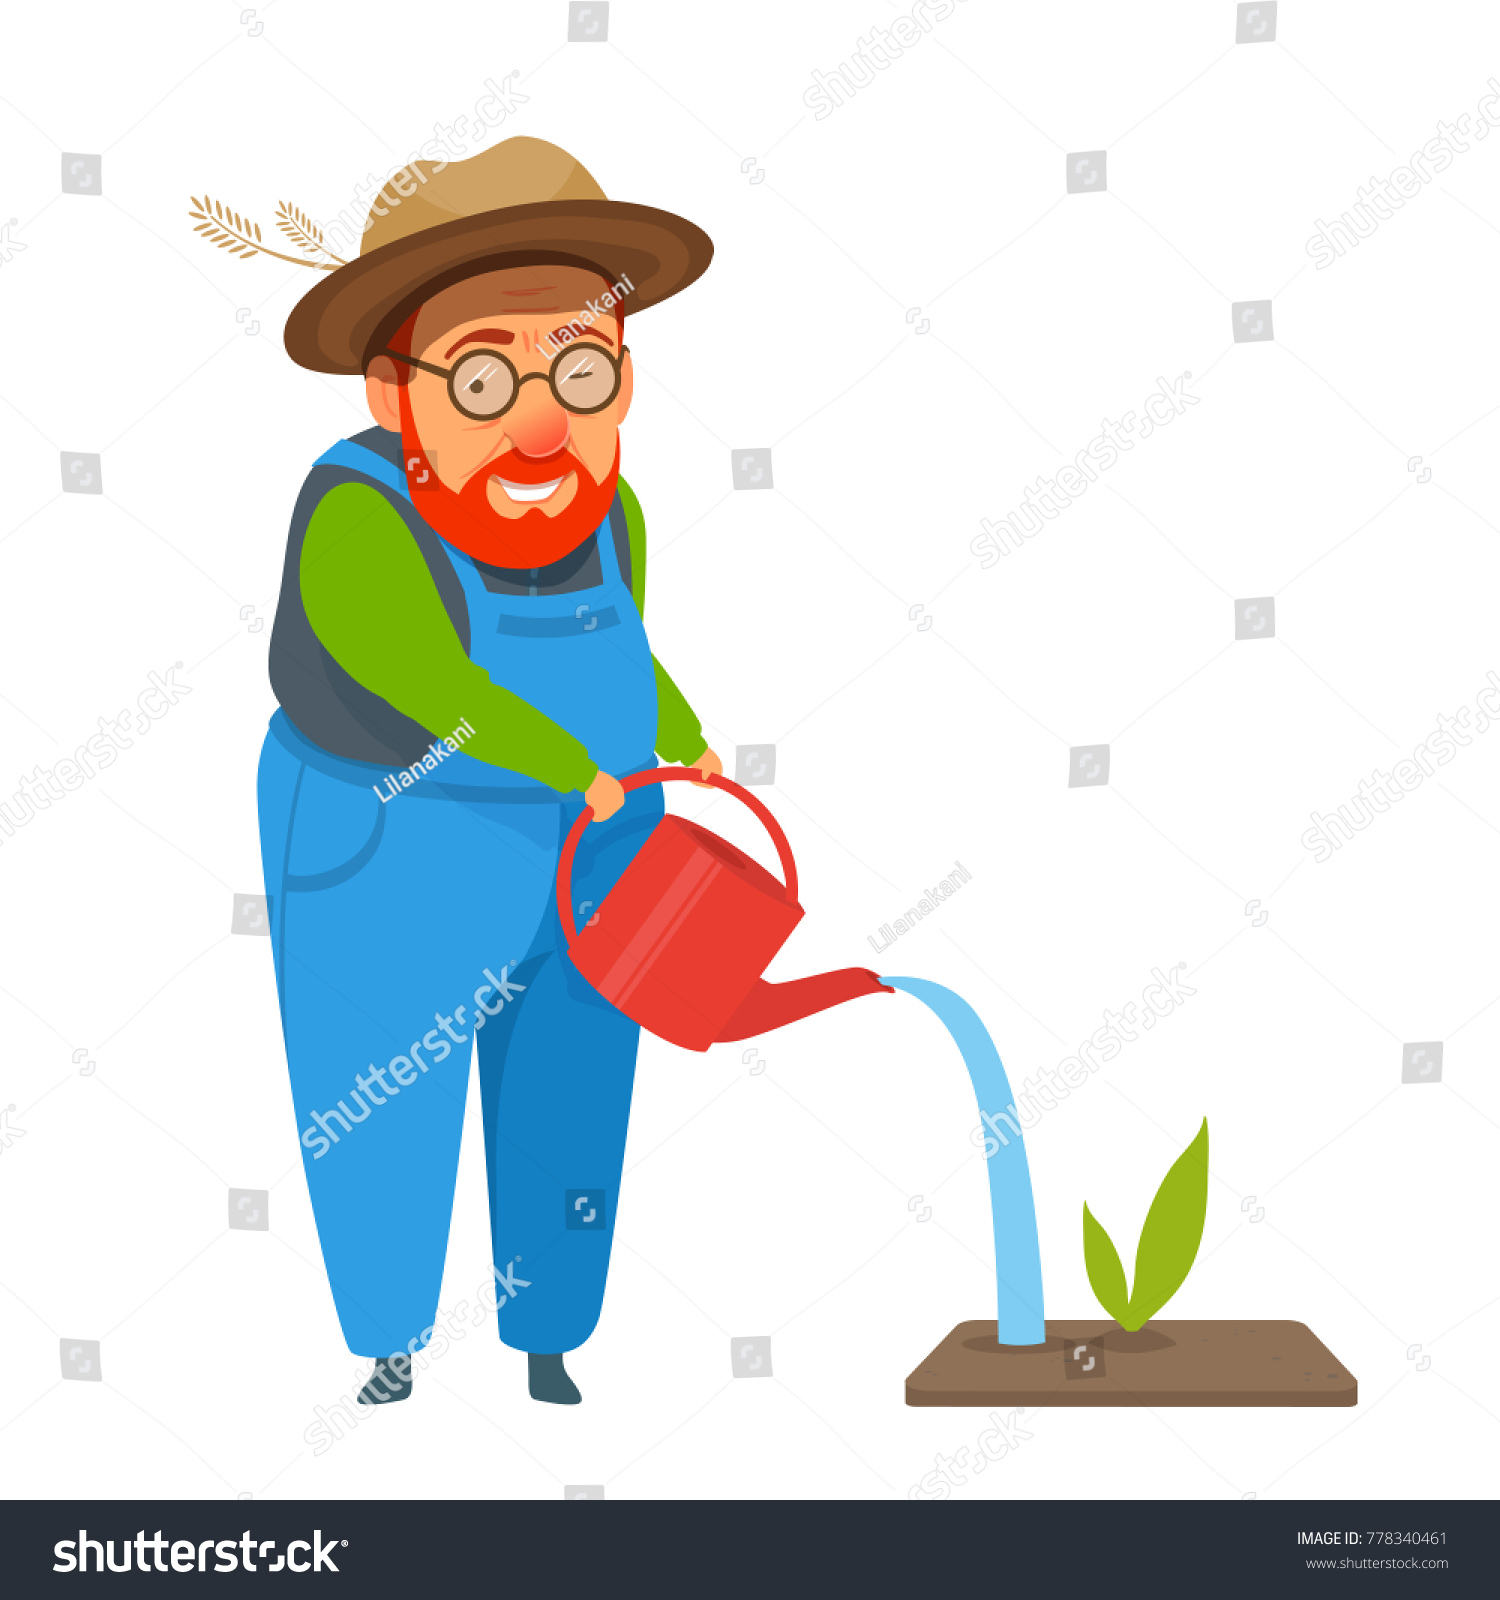 Boy Watering The Plant Illustration Royalty Free Cliparts, Vectors, And  Stock Illustration. Image 53041649.